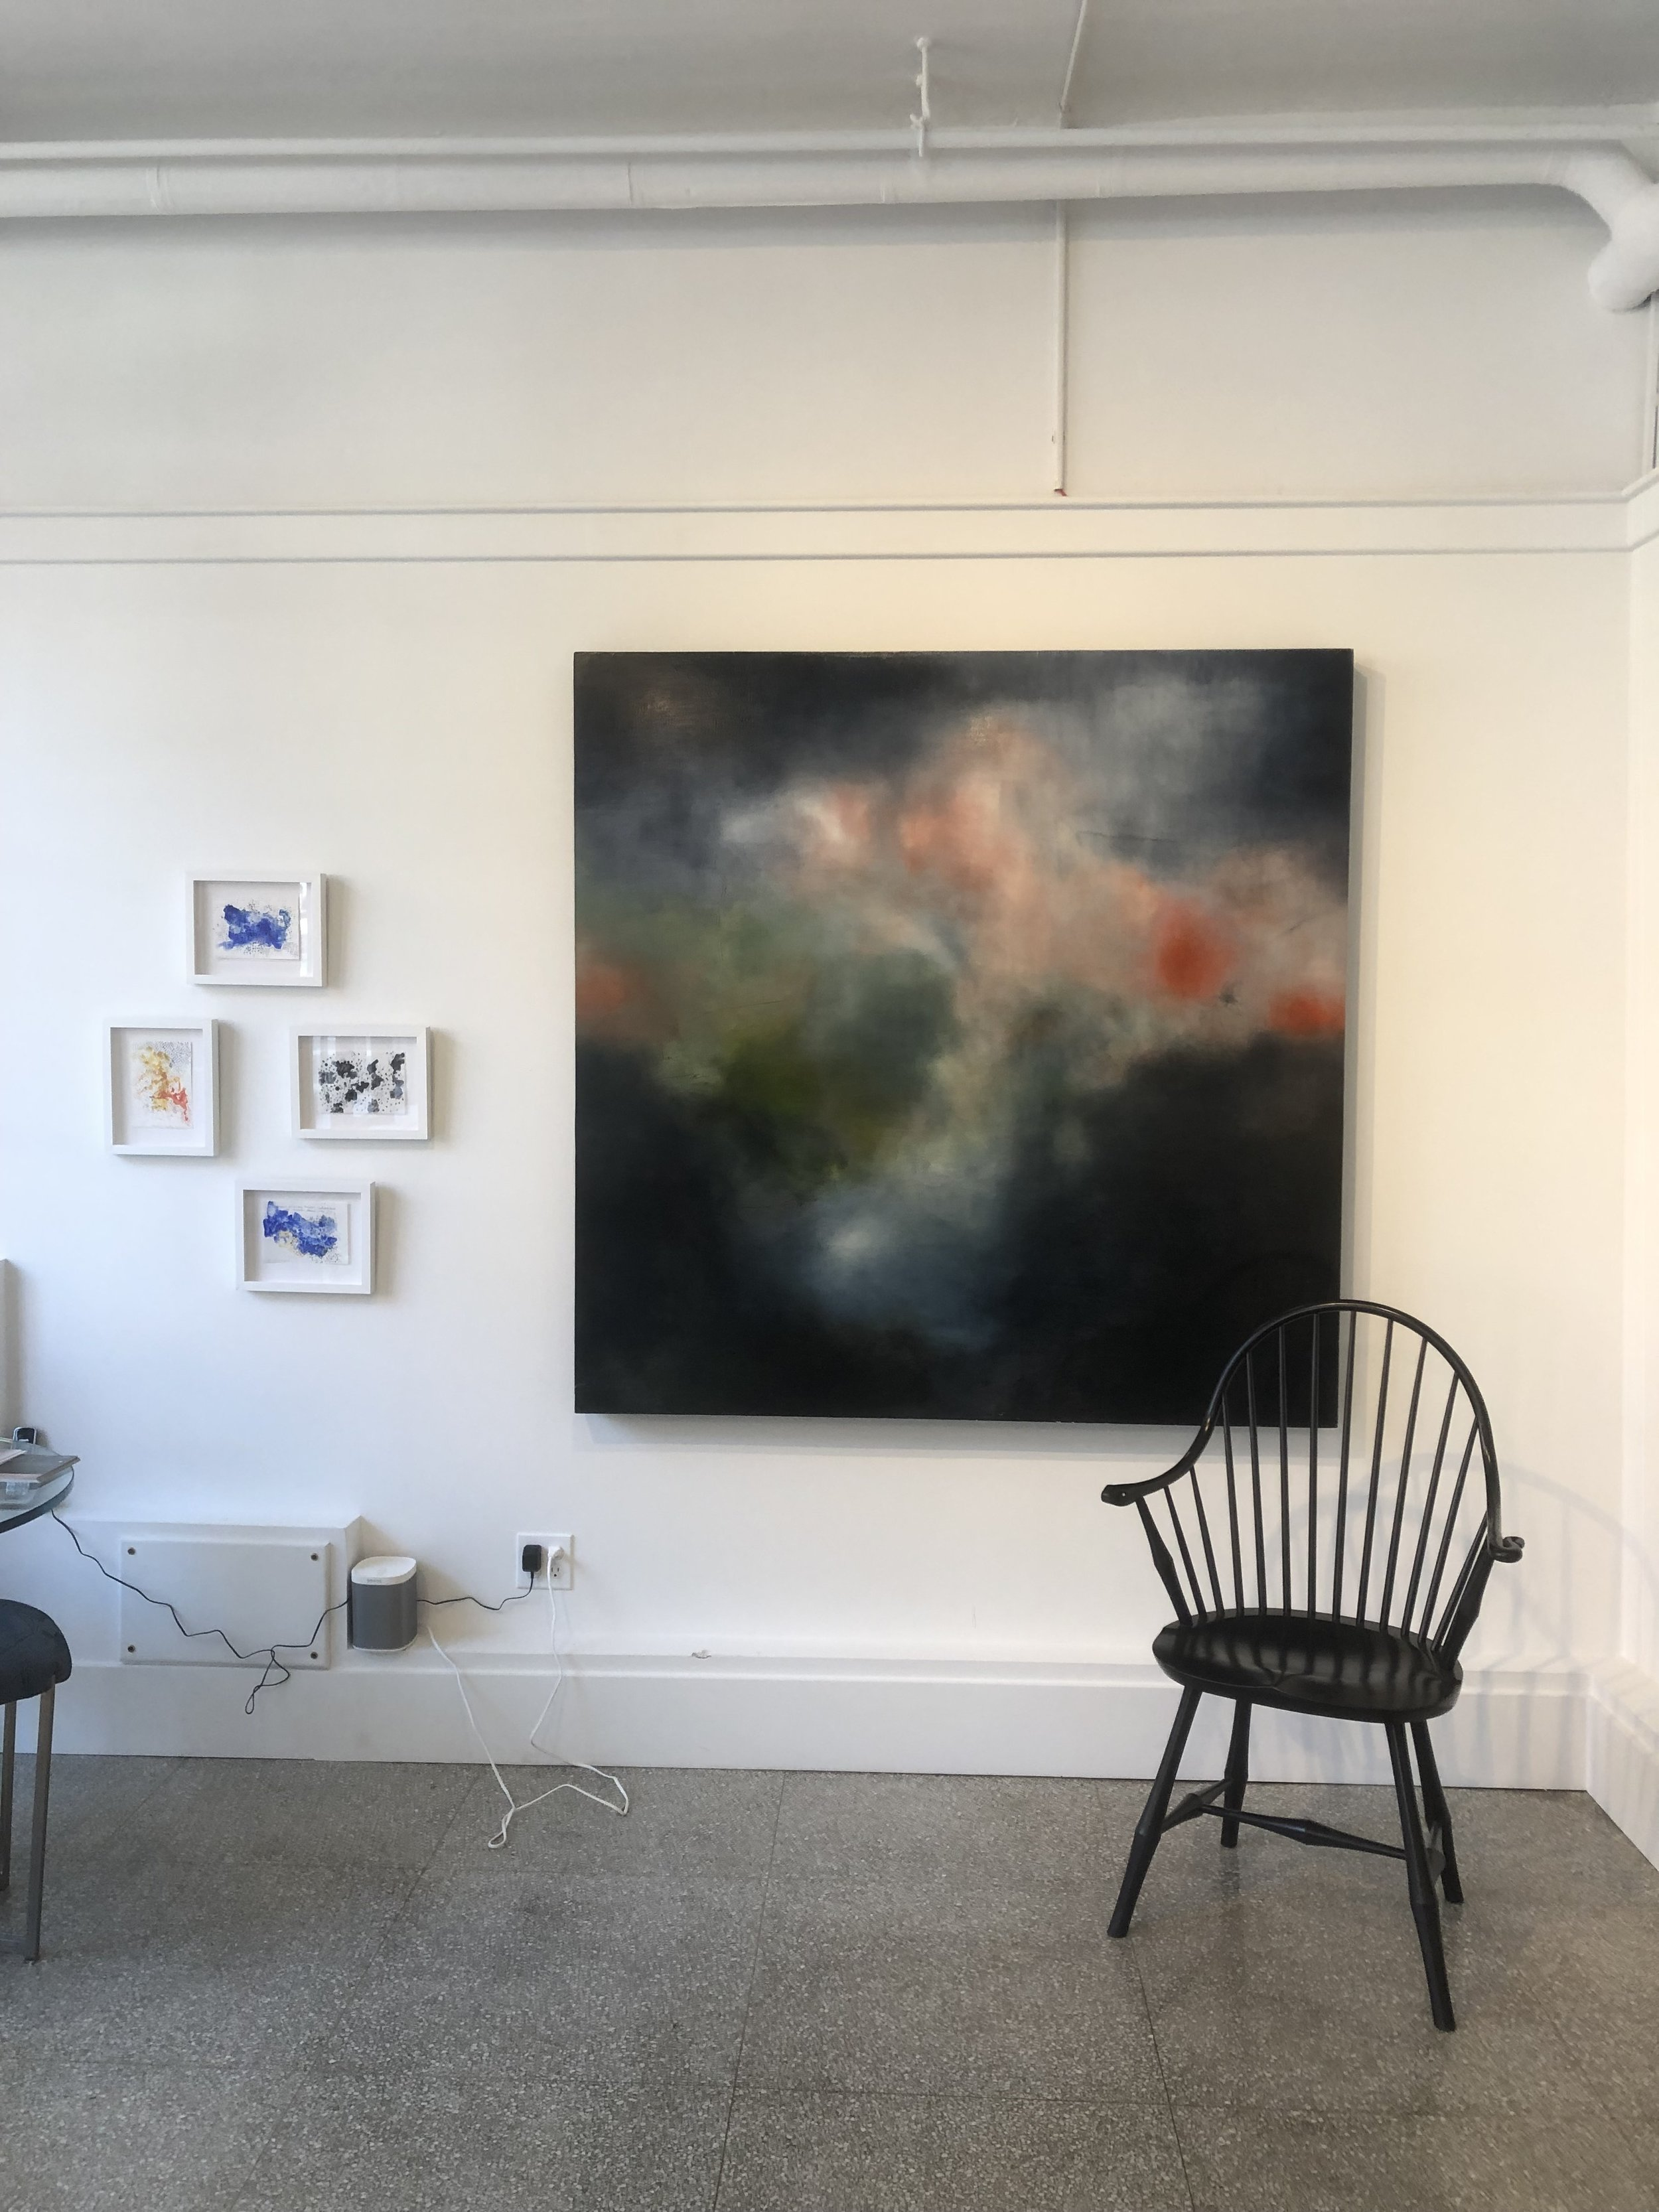 Circadian at Salon Design 126 Charles Street Boston MA 02114 Through August 25 2019